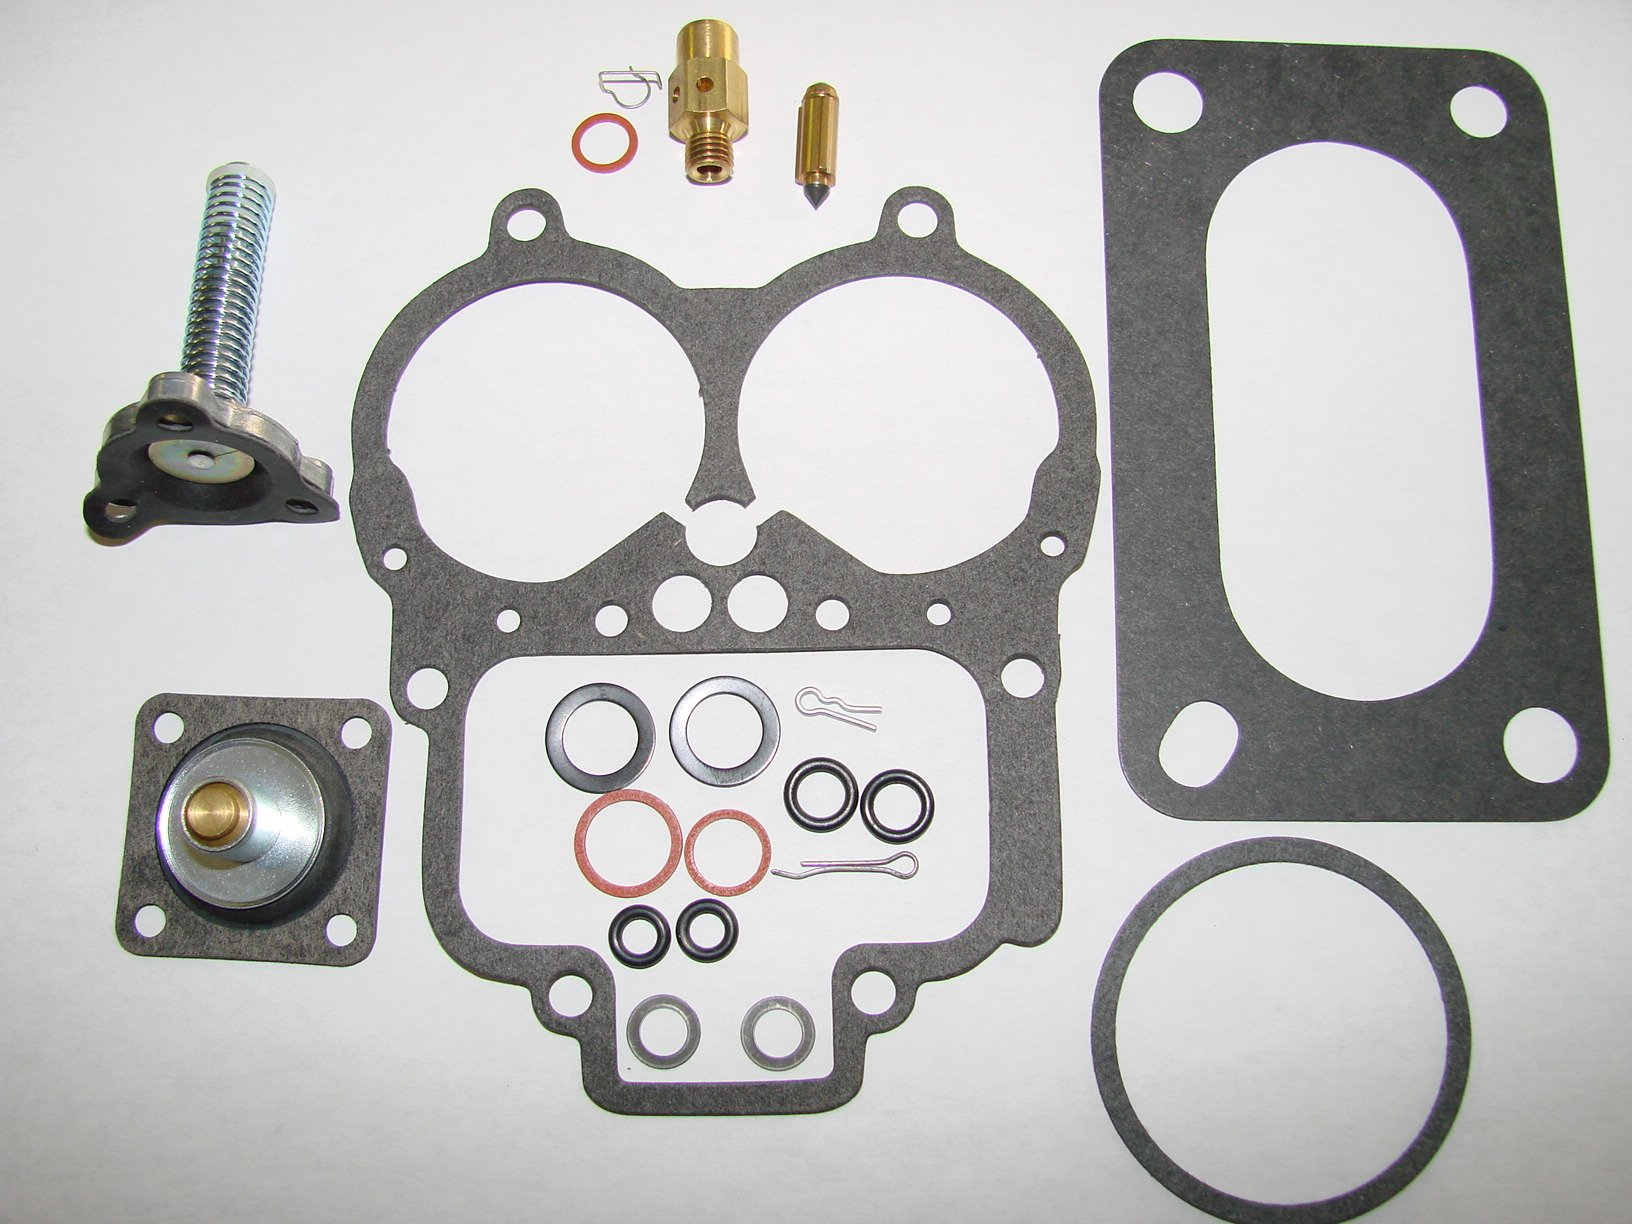 Allstate Carburetor Rebuild kit for Weber Carburetor DGV, DGAV, DGEV by Allstate Carburetor